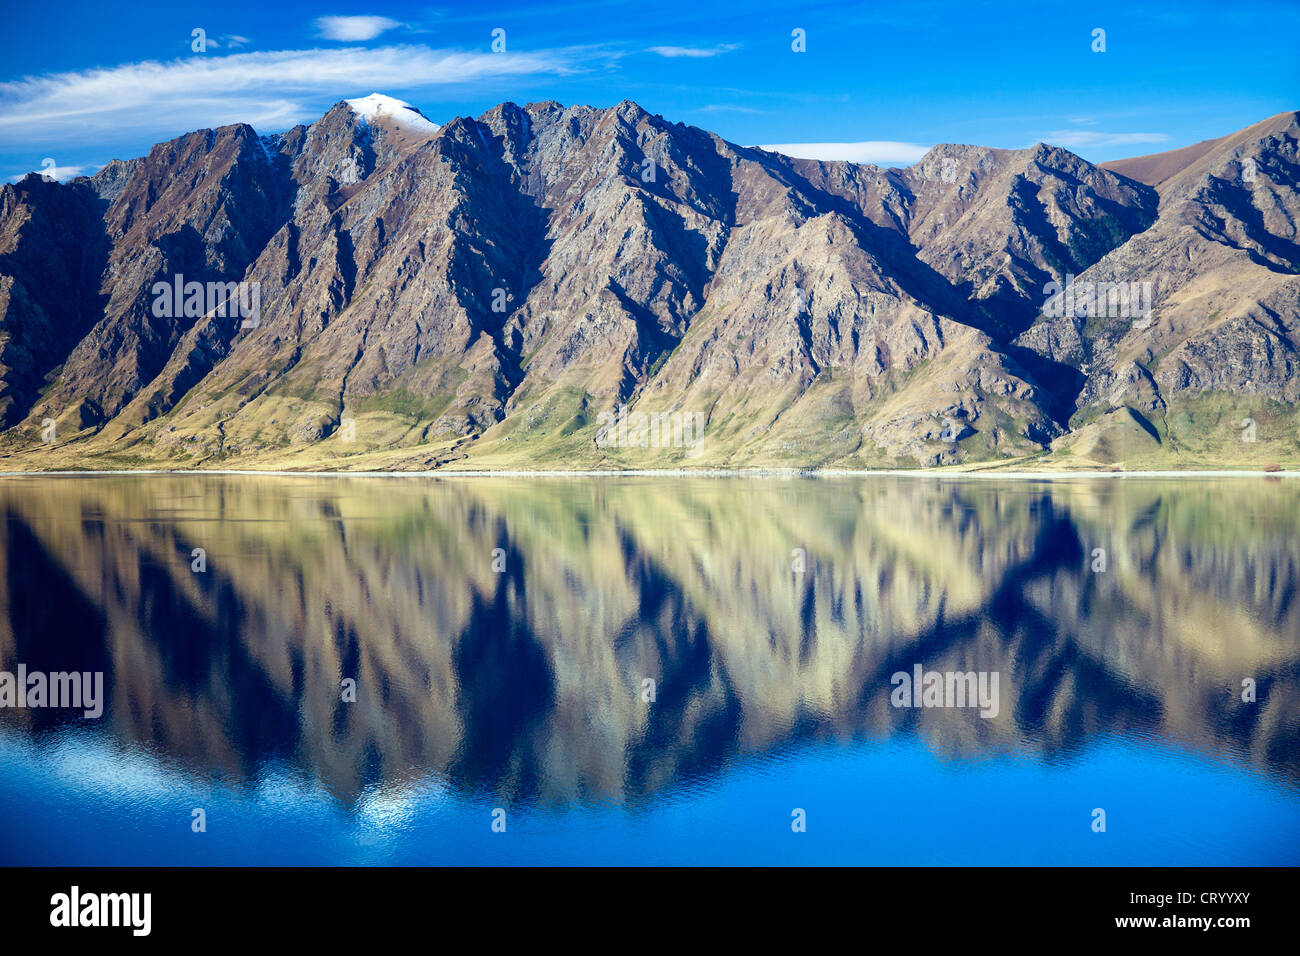 Lake Hawea, South Island of New Zealand 9 - Stock Image